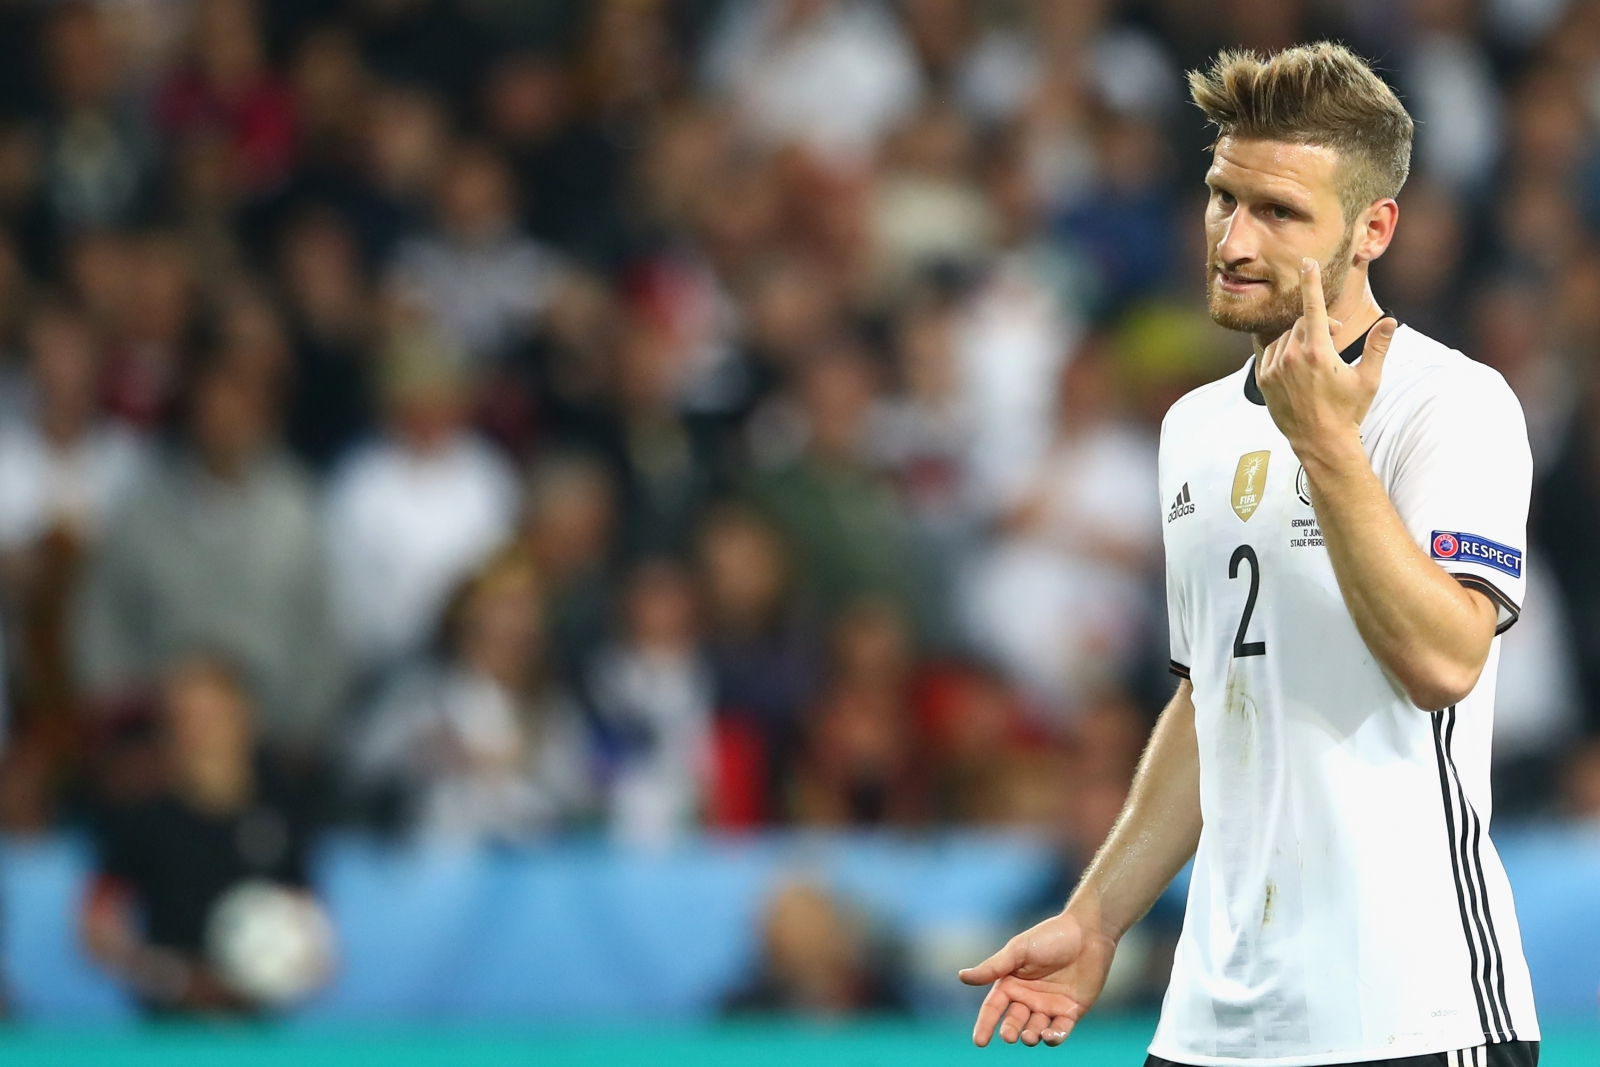 Arsenal: Gunners warned they are not only club in talks to sign Shkodran Mustafi